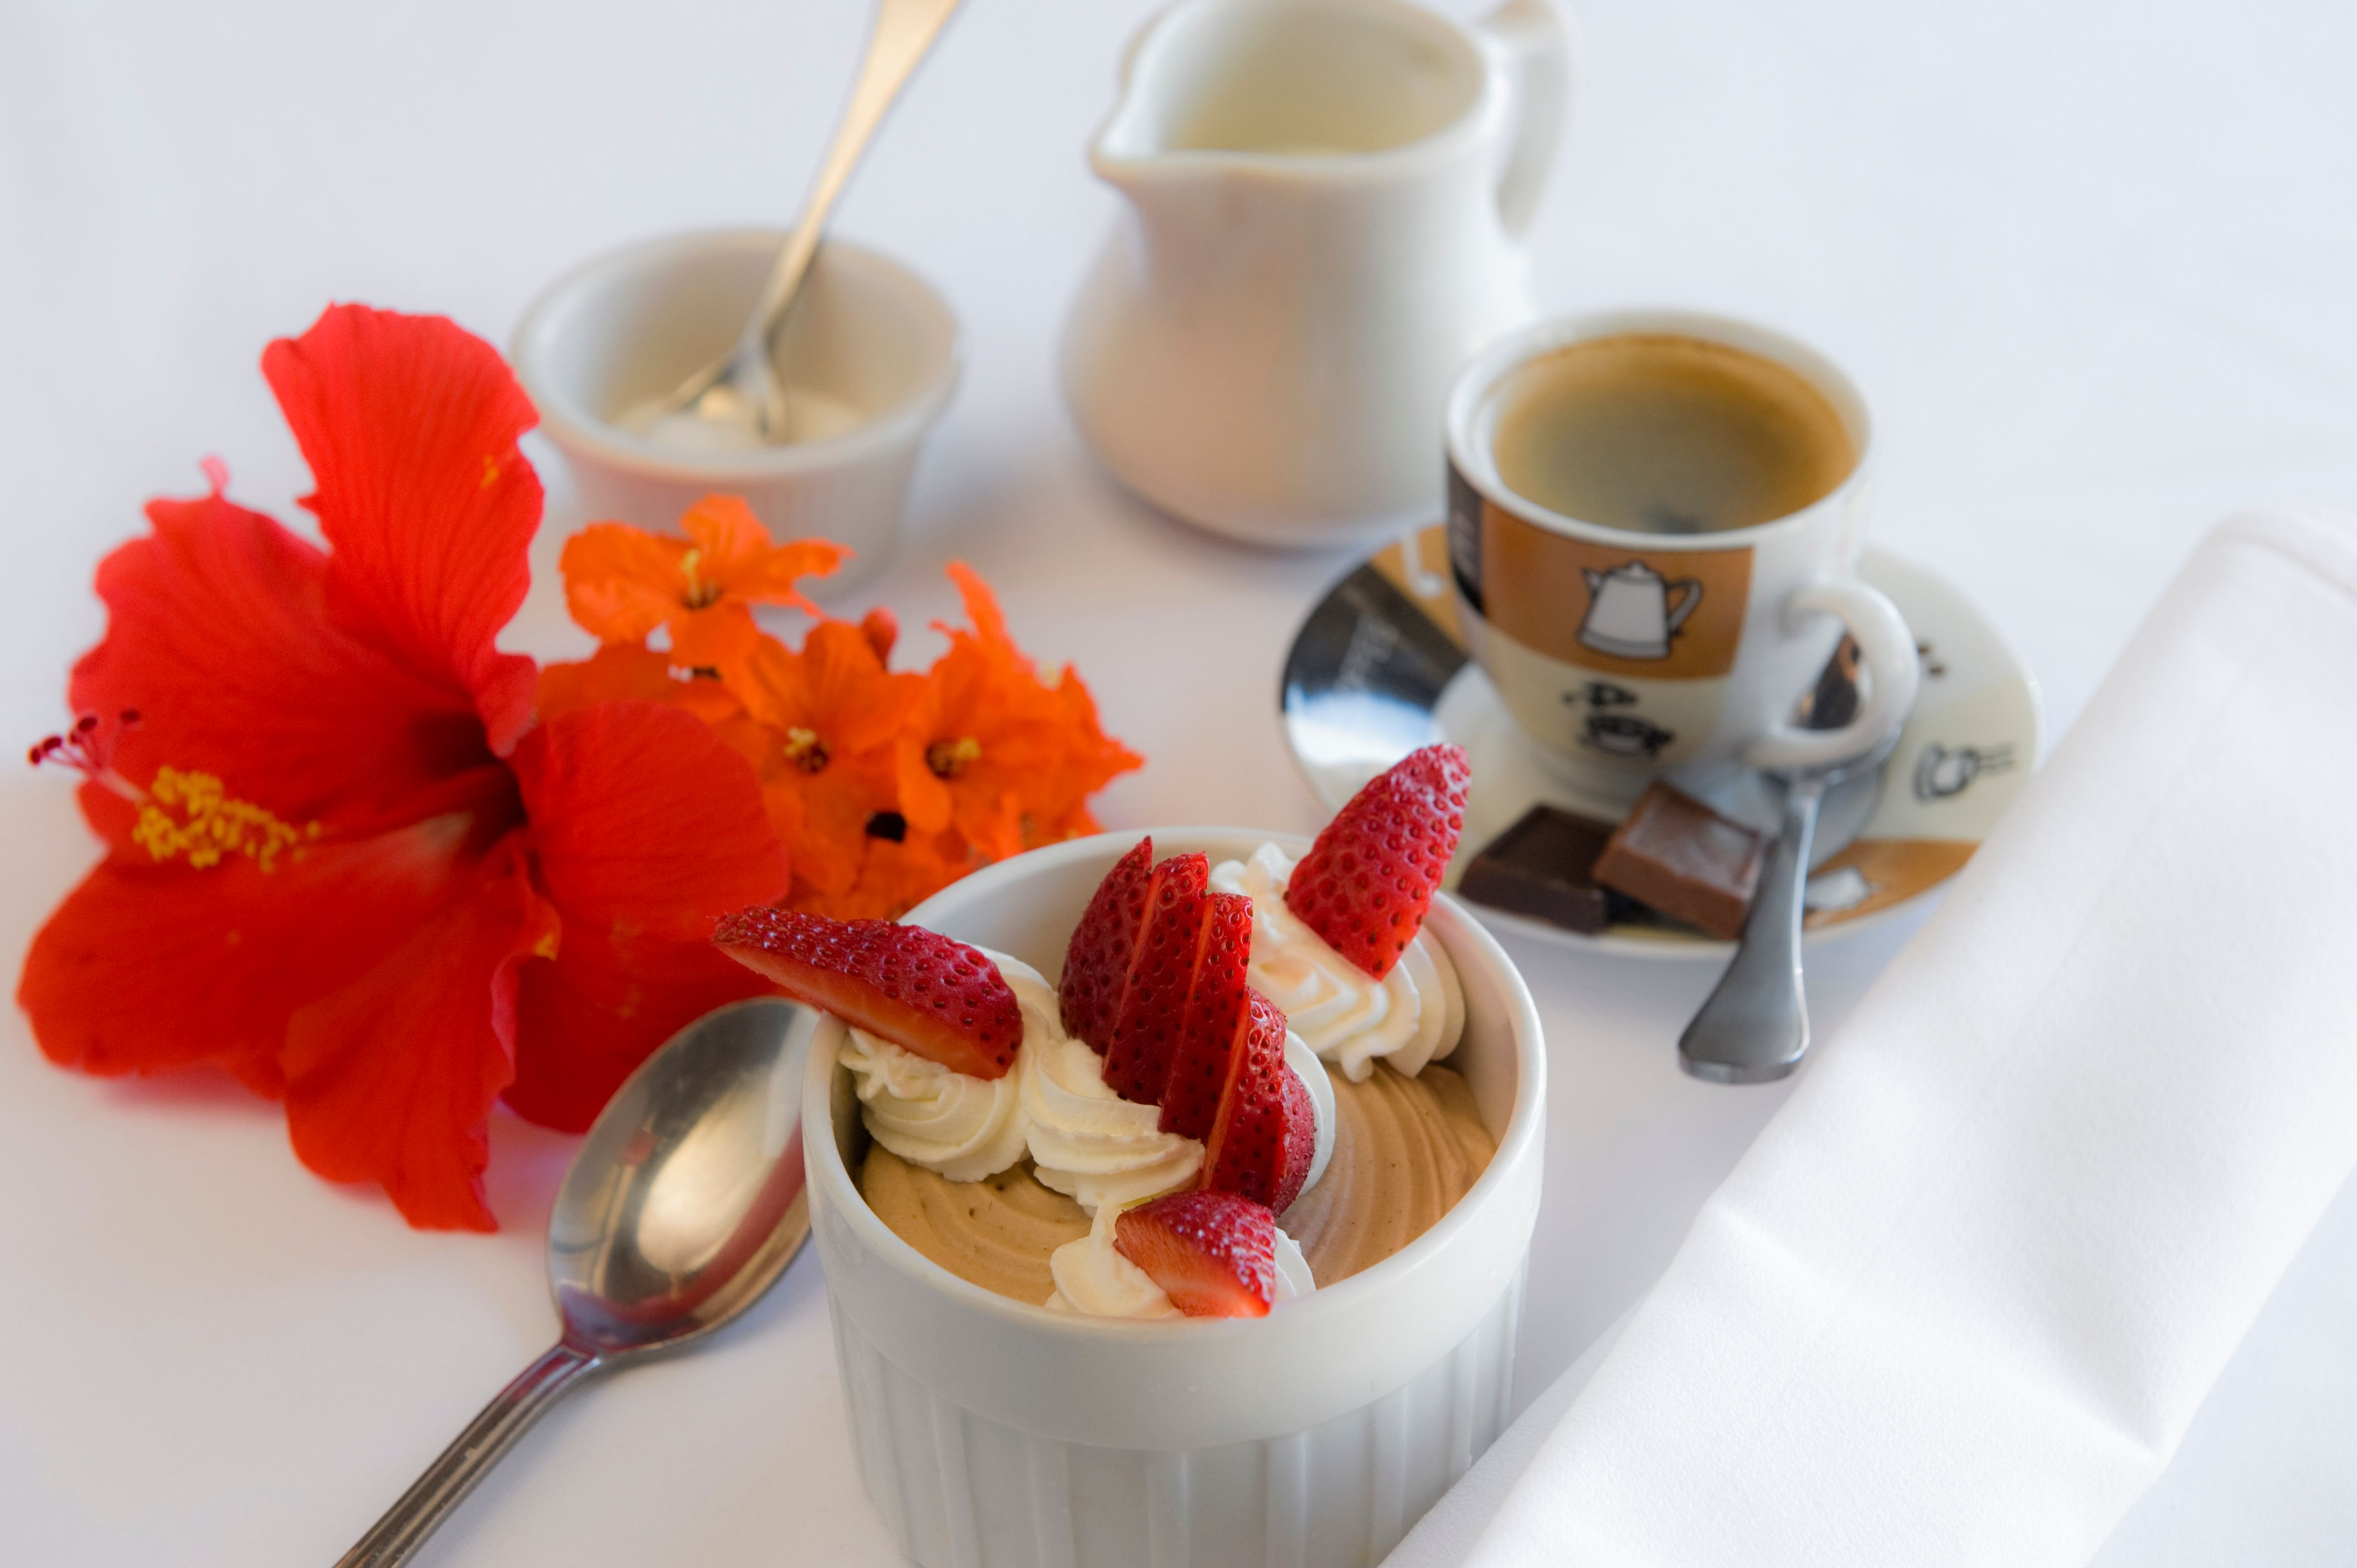 Table top commercial photography: Strawberries and espresso. Maui